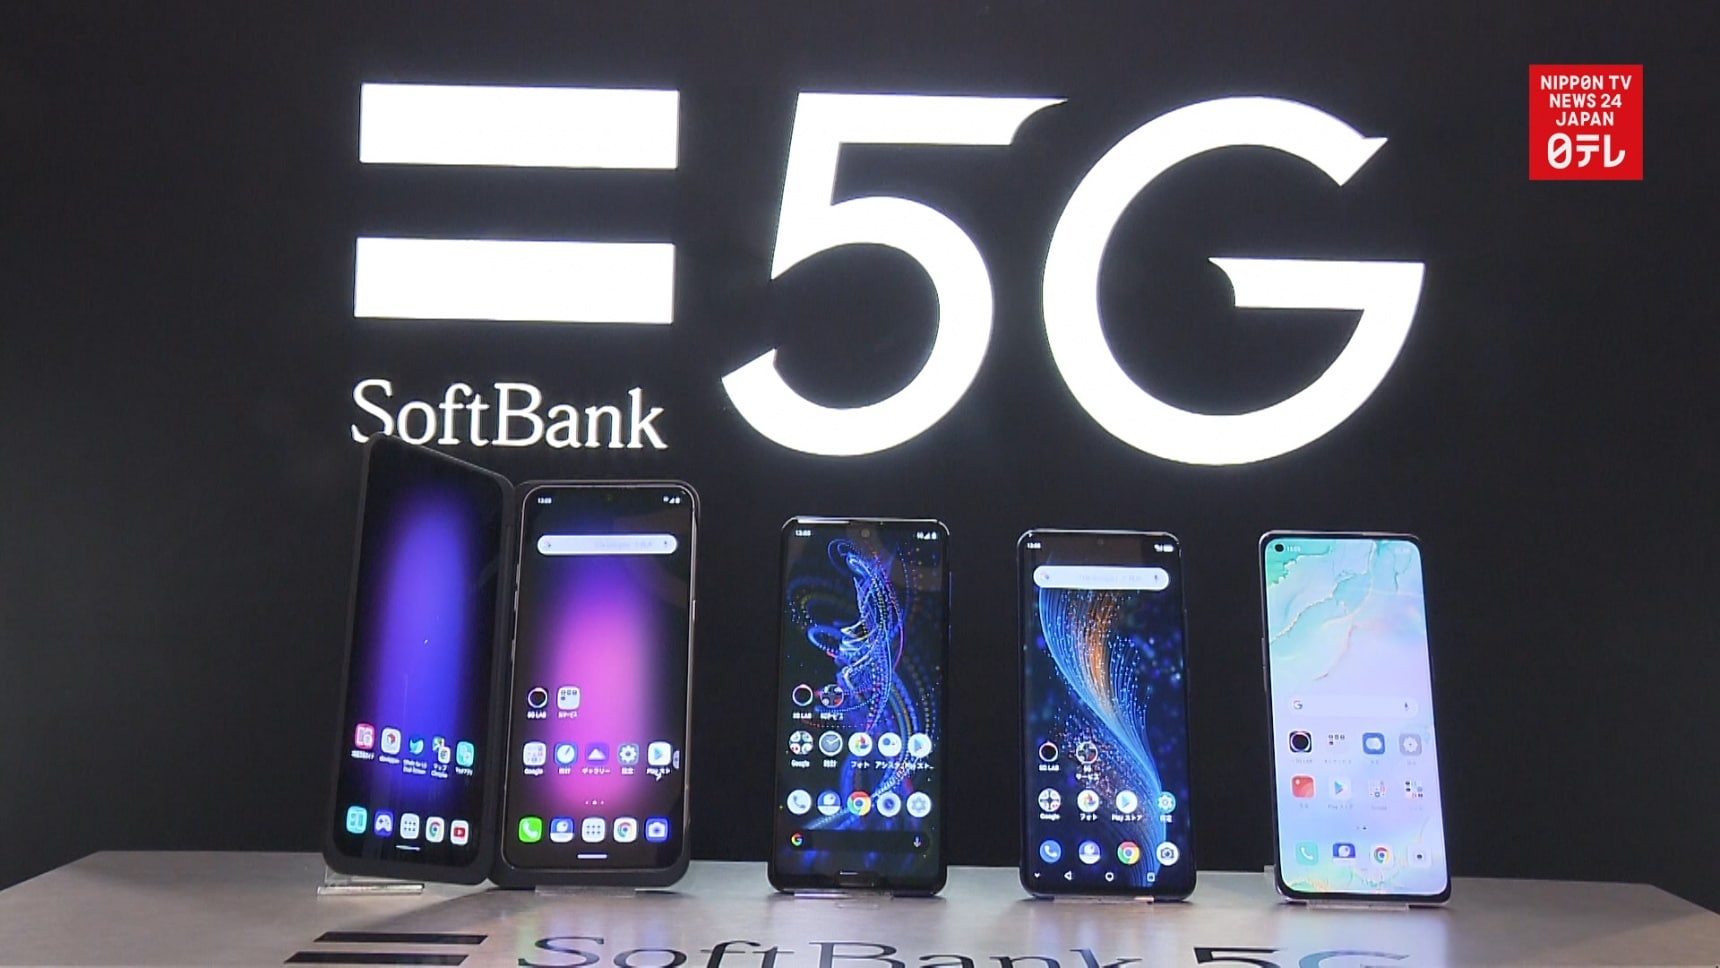 Japan Now Has 5G Network Service